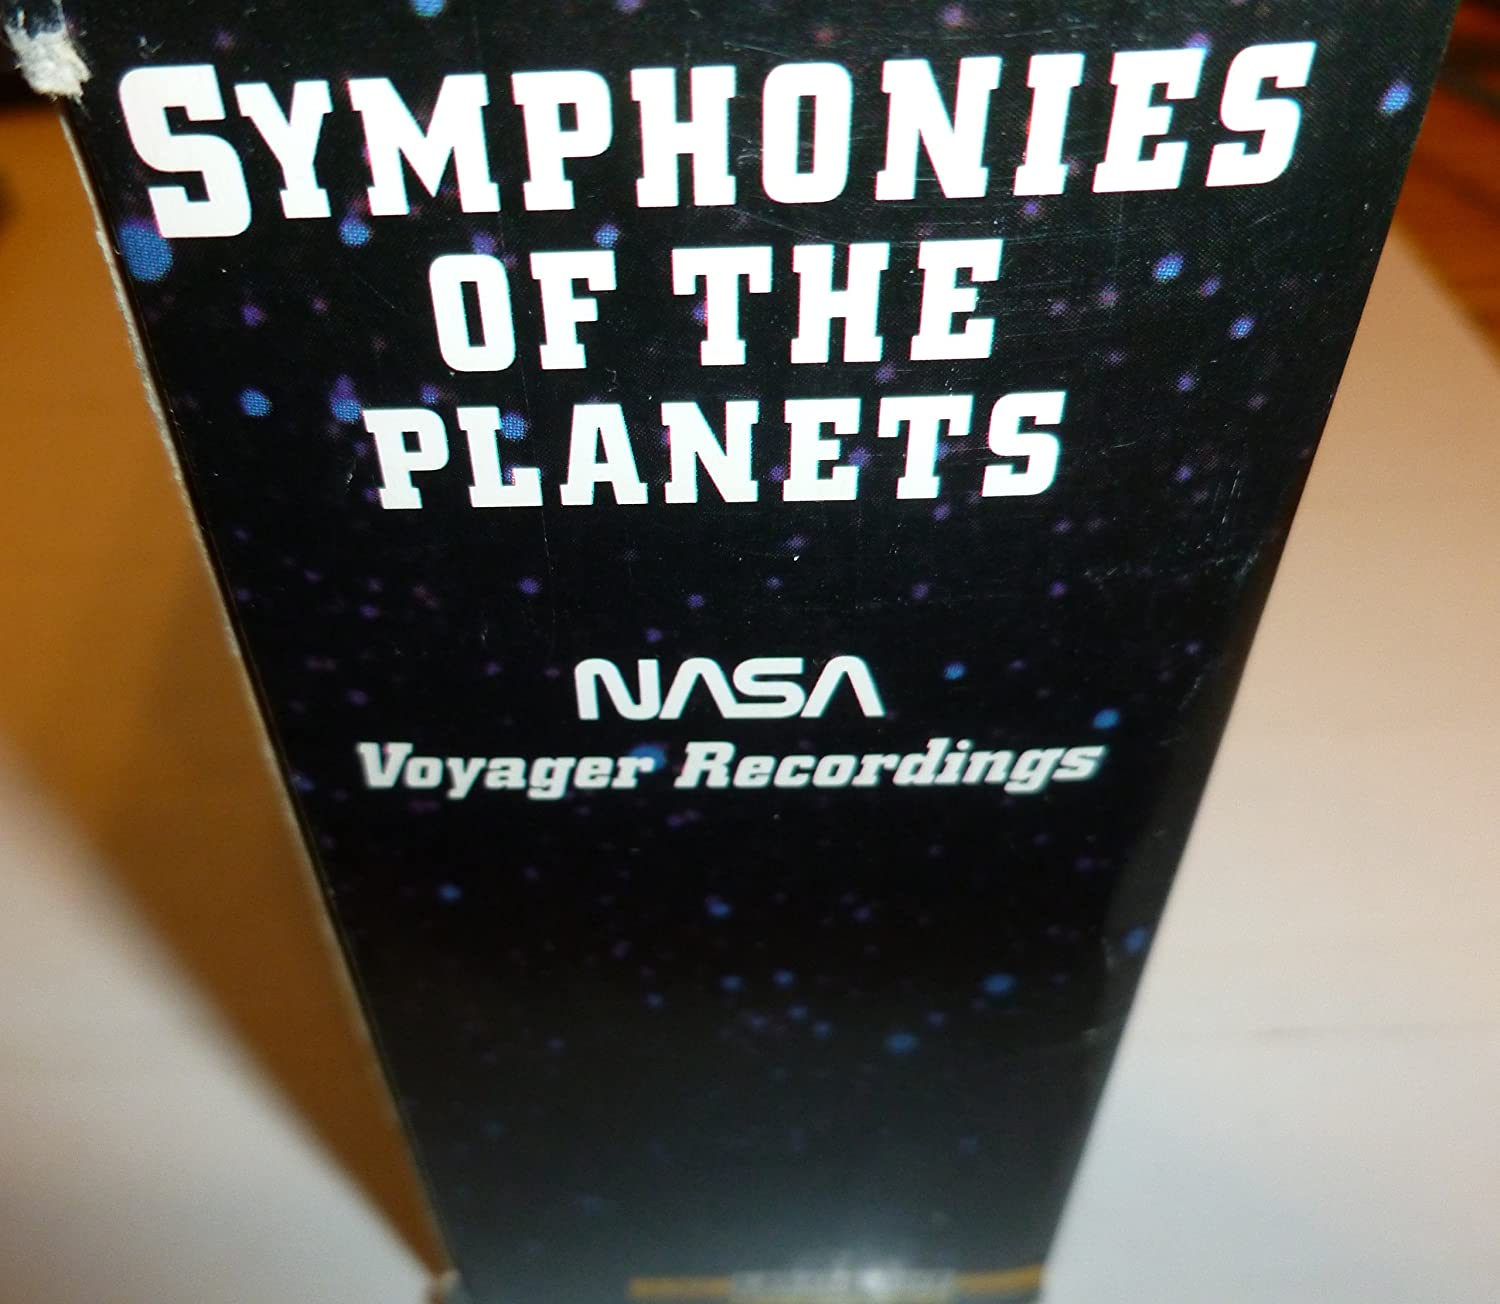 Symphonies Of The Planets 1-5 NASA Voyager Recordings